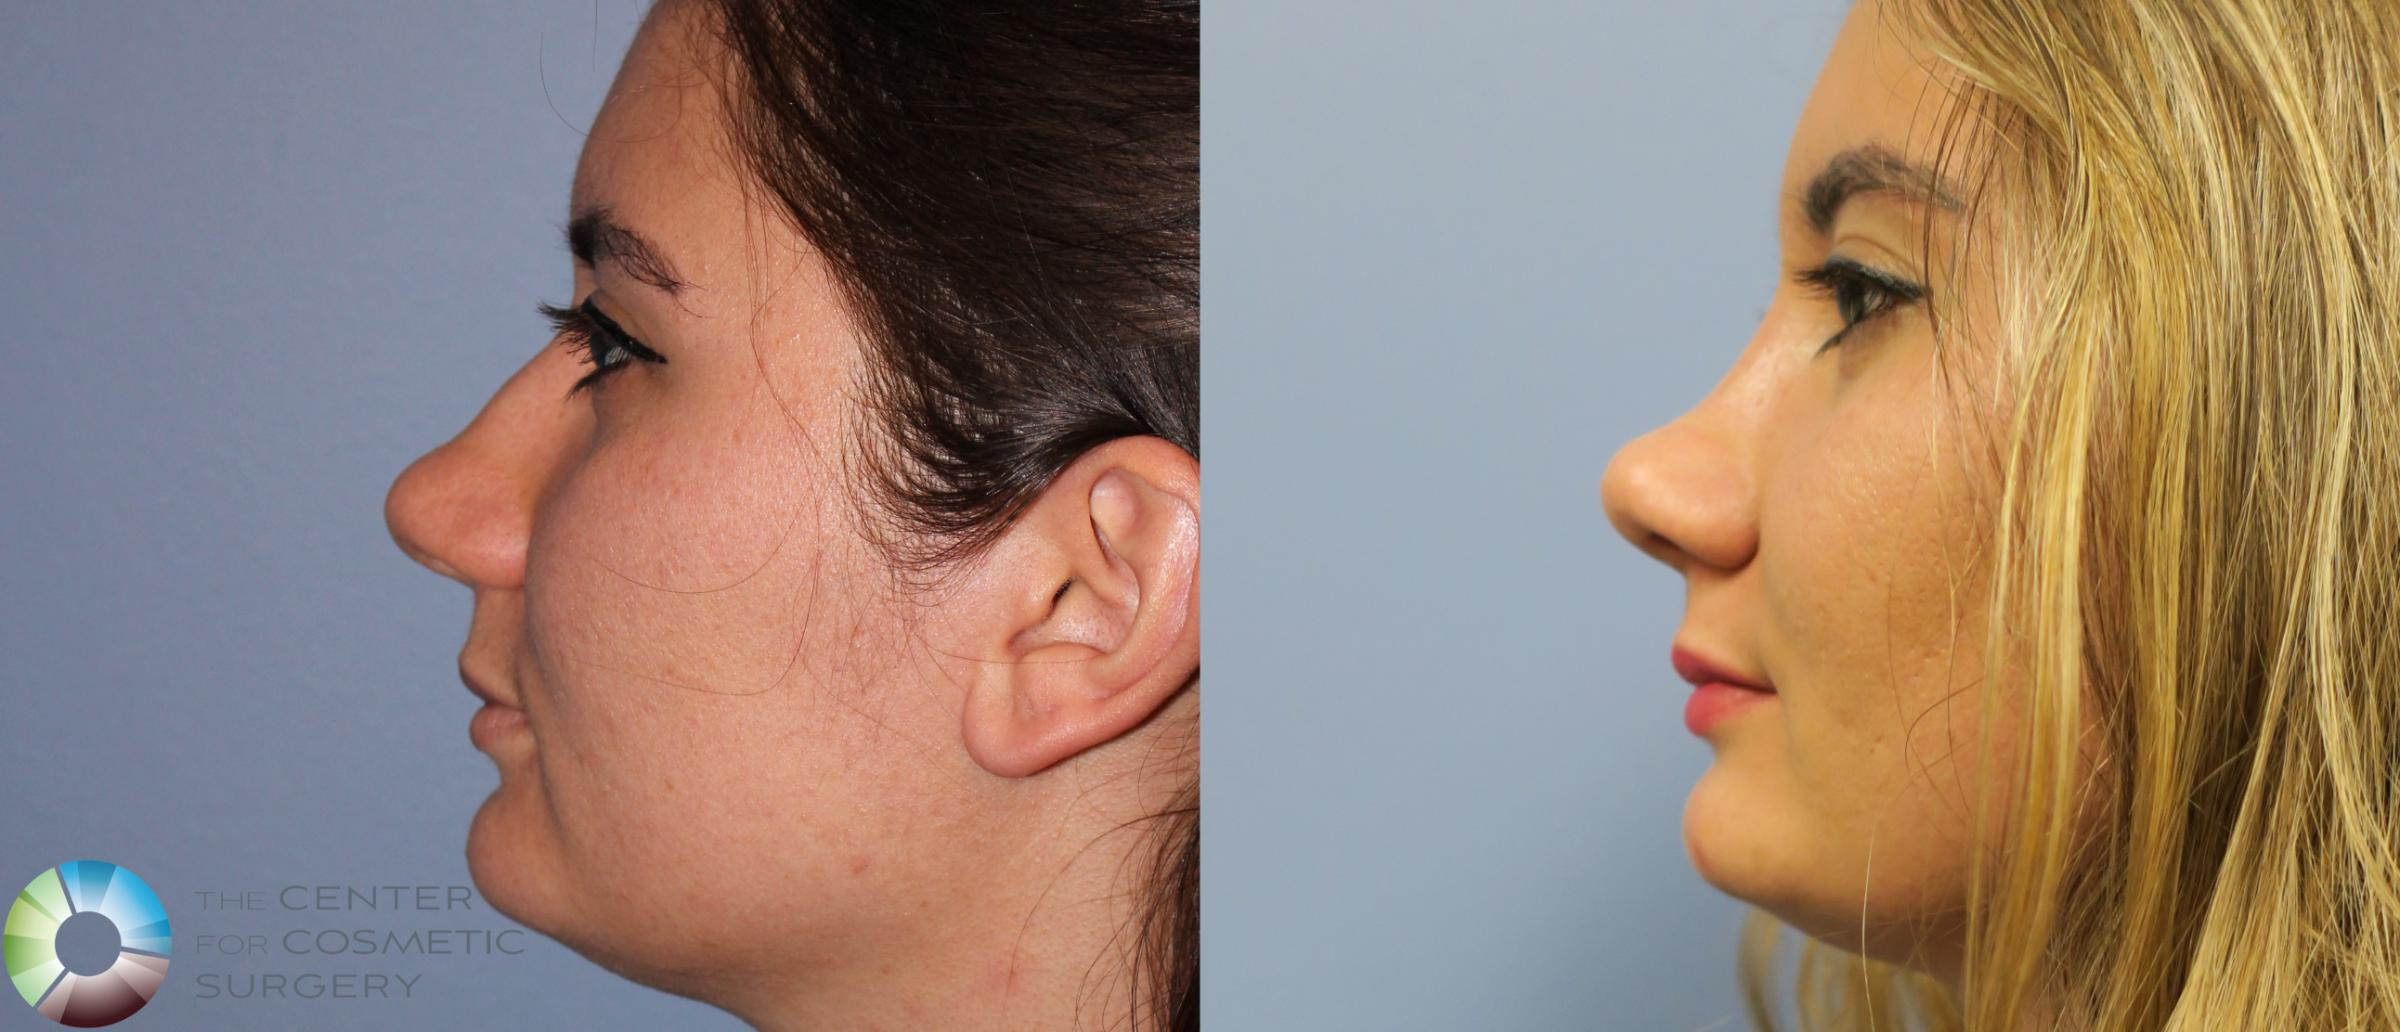 Rhinoplasty Case 820 Before & After View #3 | Golden, CO | The Center for Cosmetic Surgery